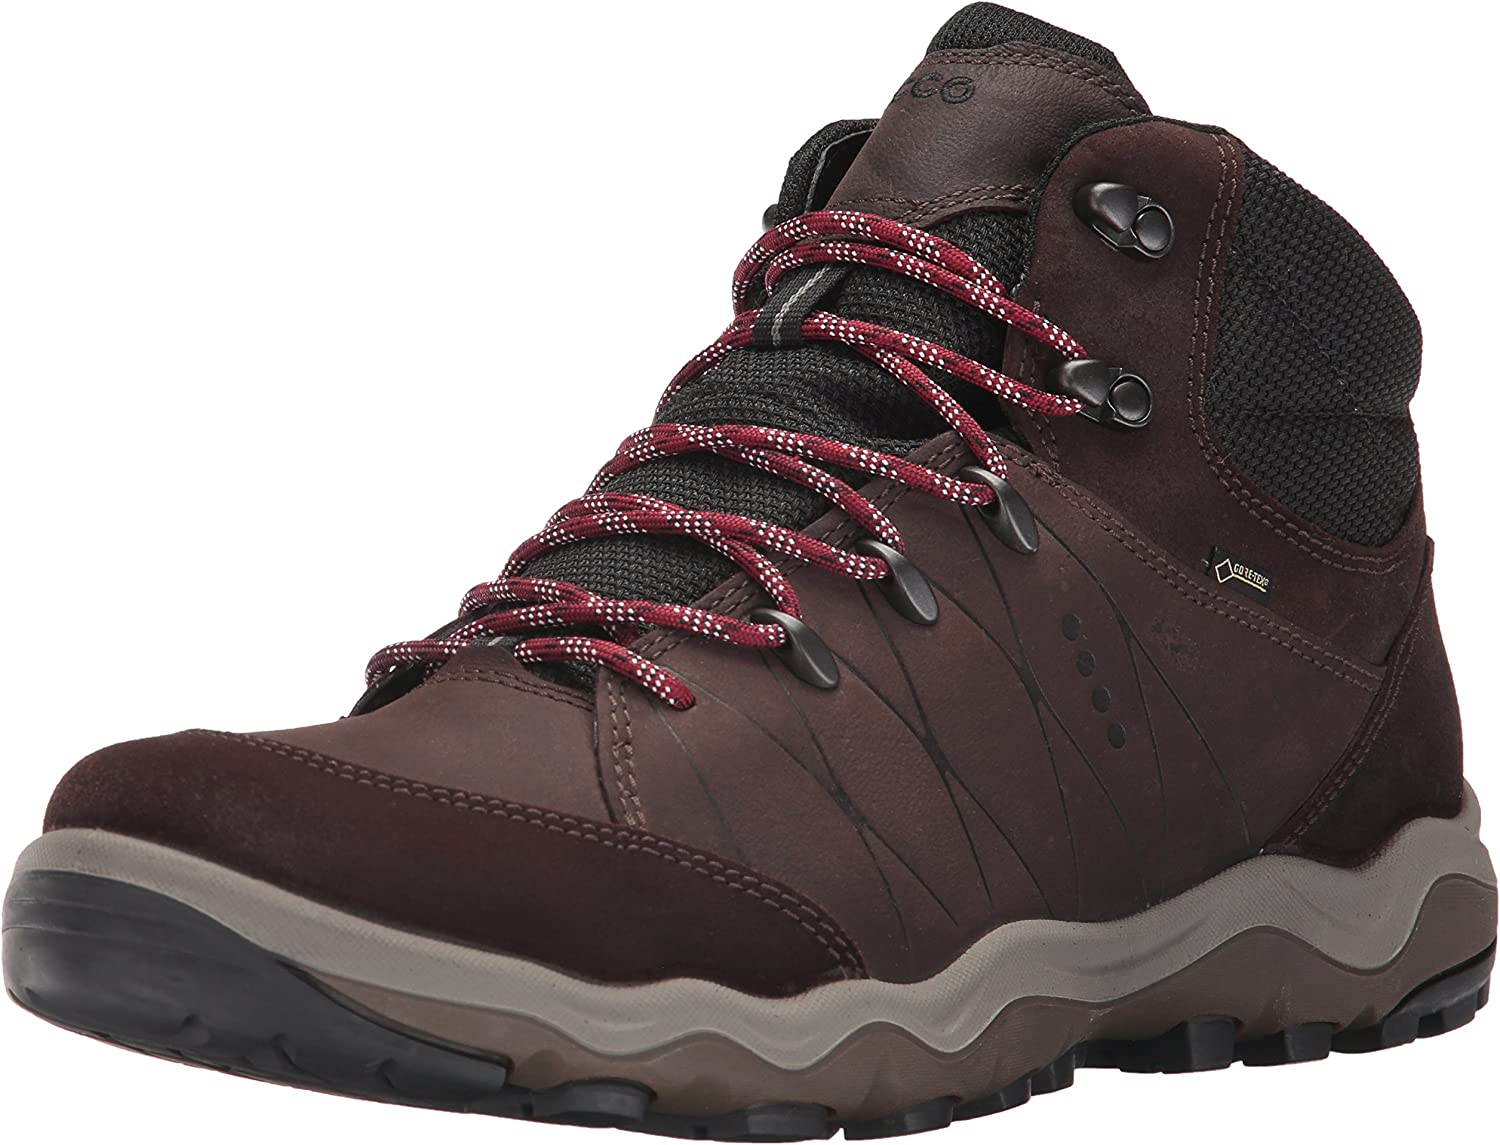 ECCO Men's Ulterra High Gore-Tex Backpacking Boot